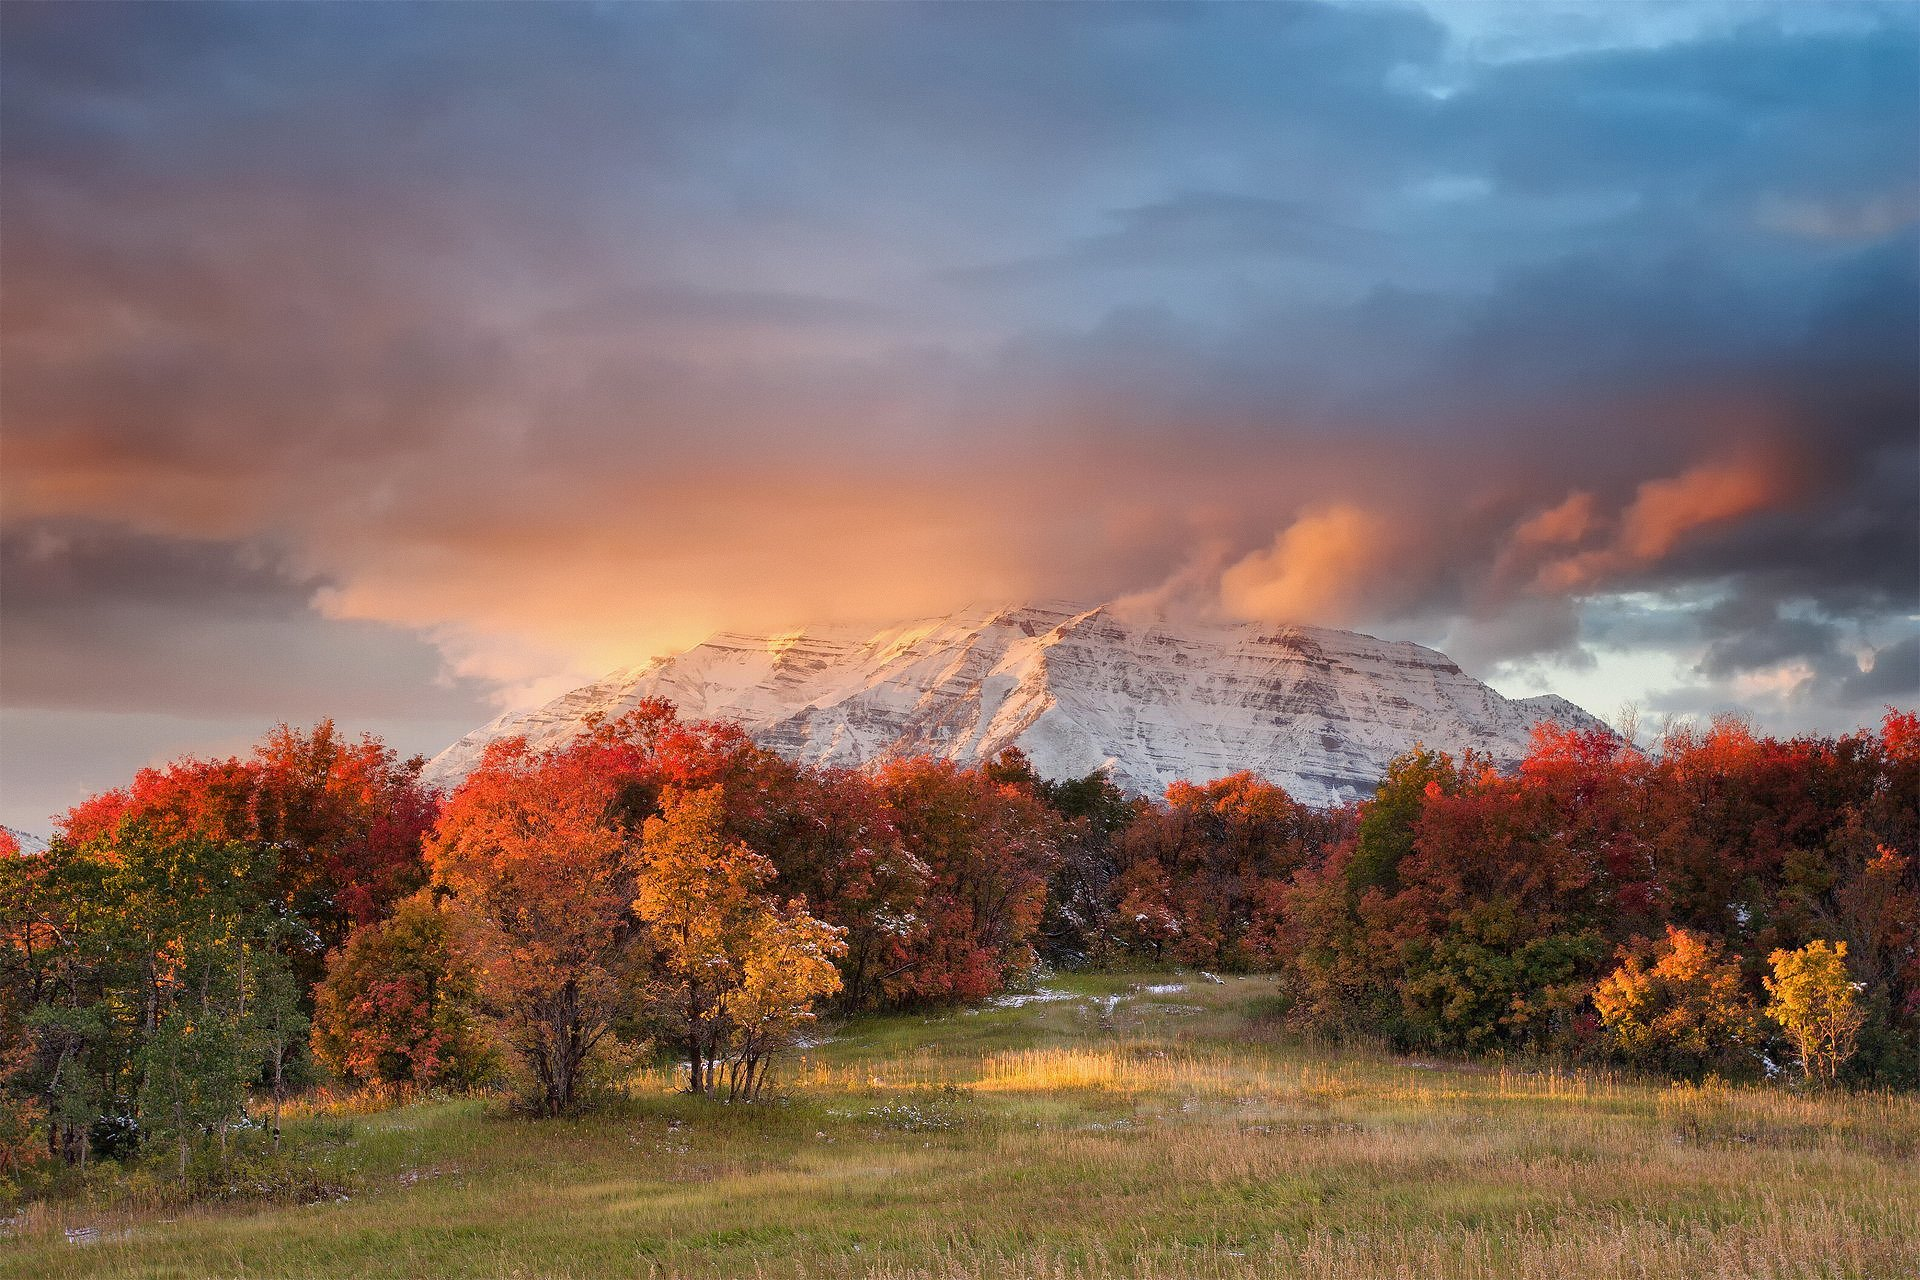 Fall Foliage Hd Wallpaper Cloudy Sunset Over Autumn Forest Hd Wallpaper Background